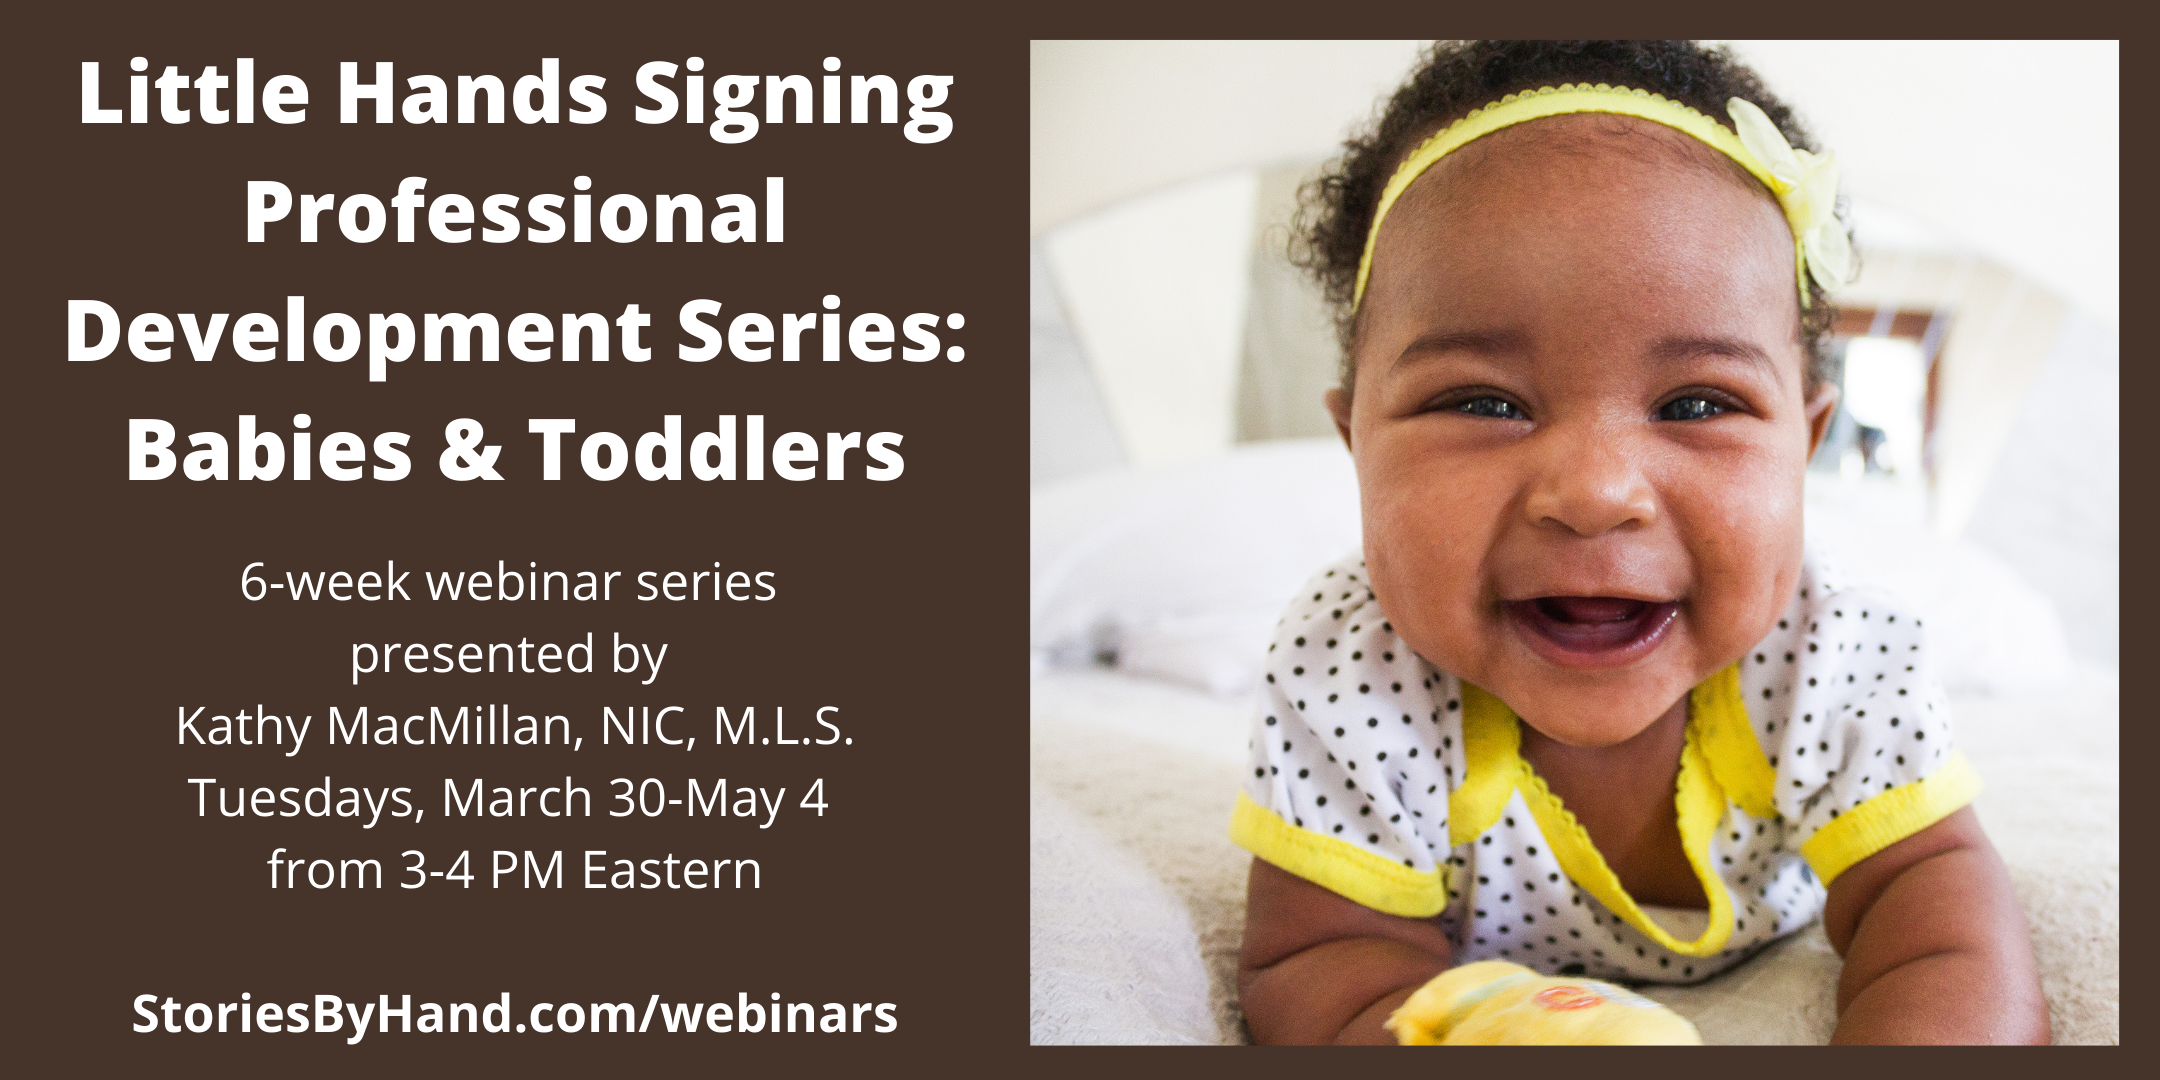 Little Hands Signing Professional Development Series: Babies & Toddlers | 6-week interactive series presented by Kathy MacMillan, NIC, M.L.S. | Tuesdays, March 30-May 4, 2021 | 3-4 PM Eastern | StoriesByHand.com/webinars